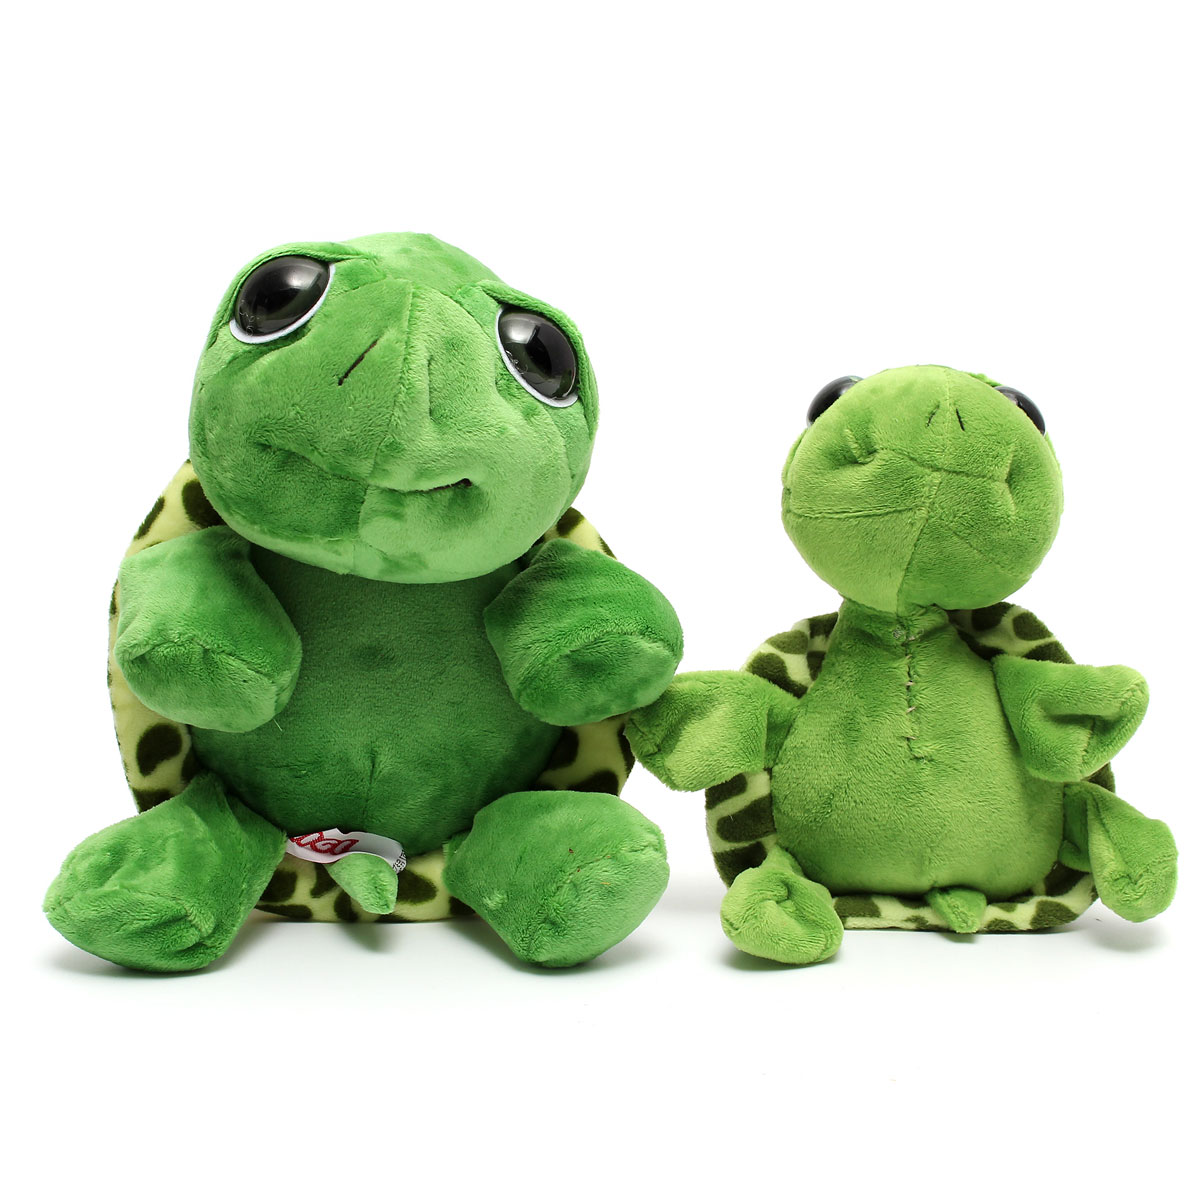 Cute Big Eye Series Tortoise Doll Turtle Stuffed Plush Sweet Animal Family Soft Cotton Toy Baby Kid New Year Gift Home Car Decor(China (Mainland))